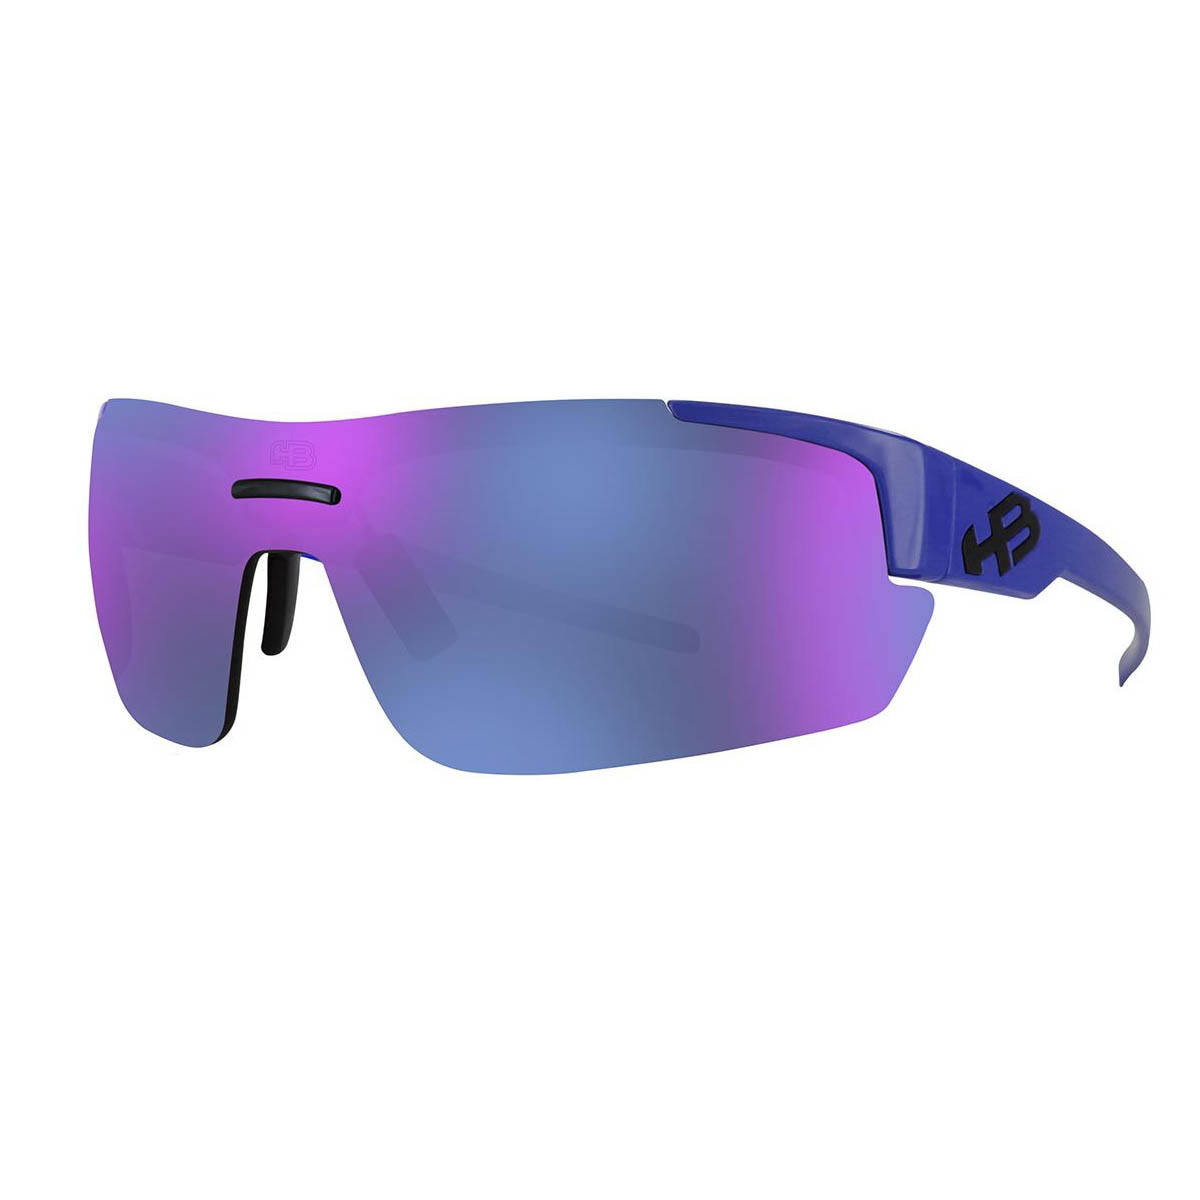 OCULOS HB HIGHLANDER 3B ROYAL BLUE BLUE CHROME